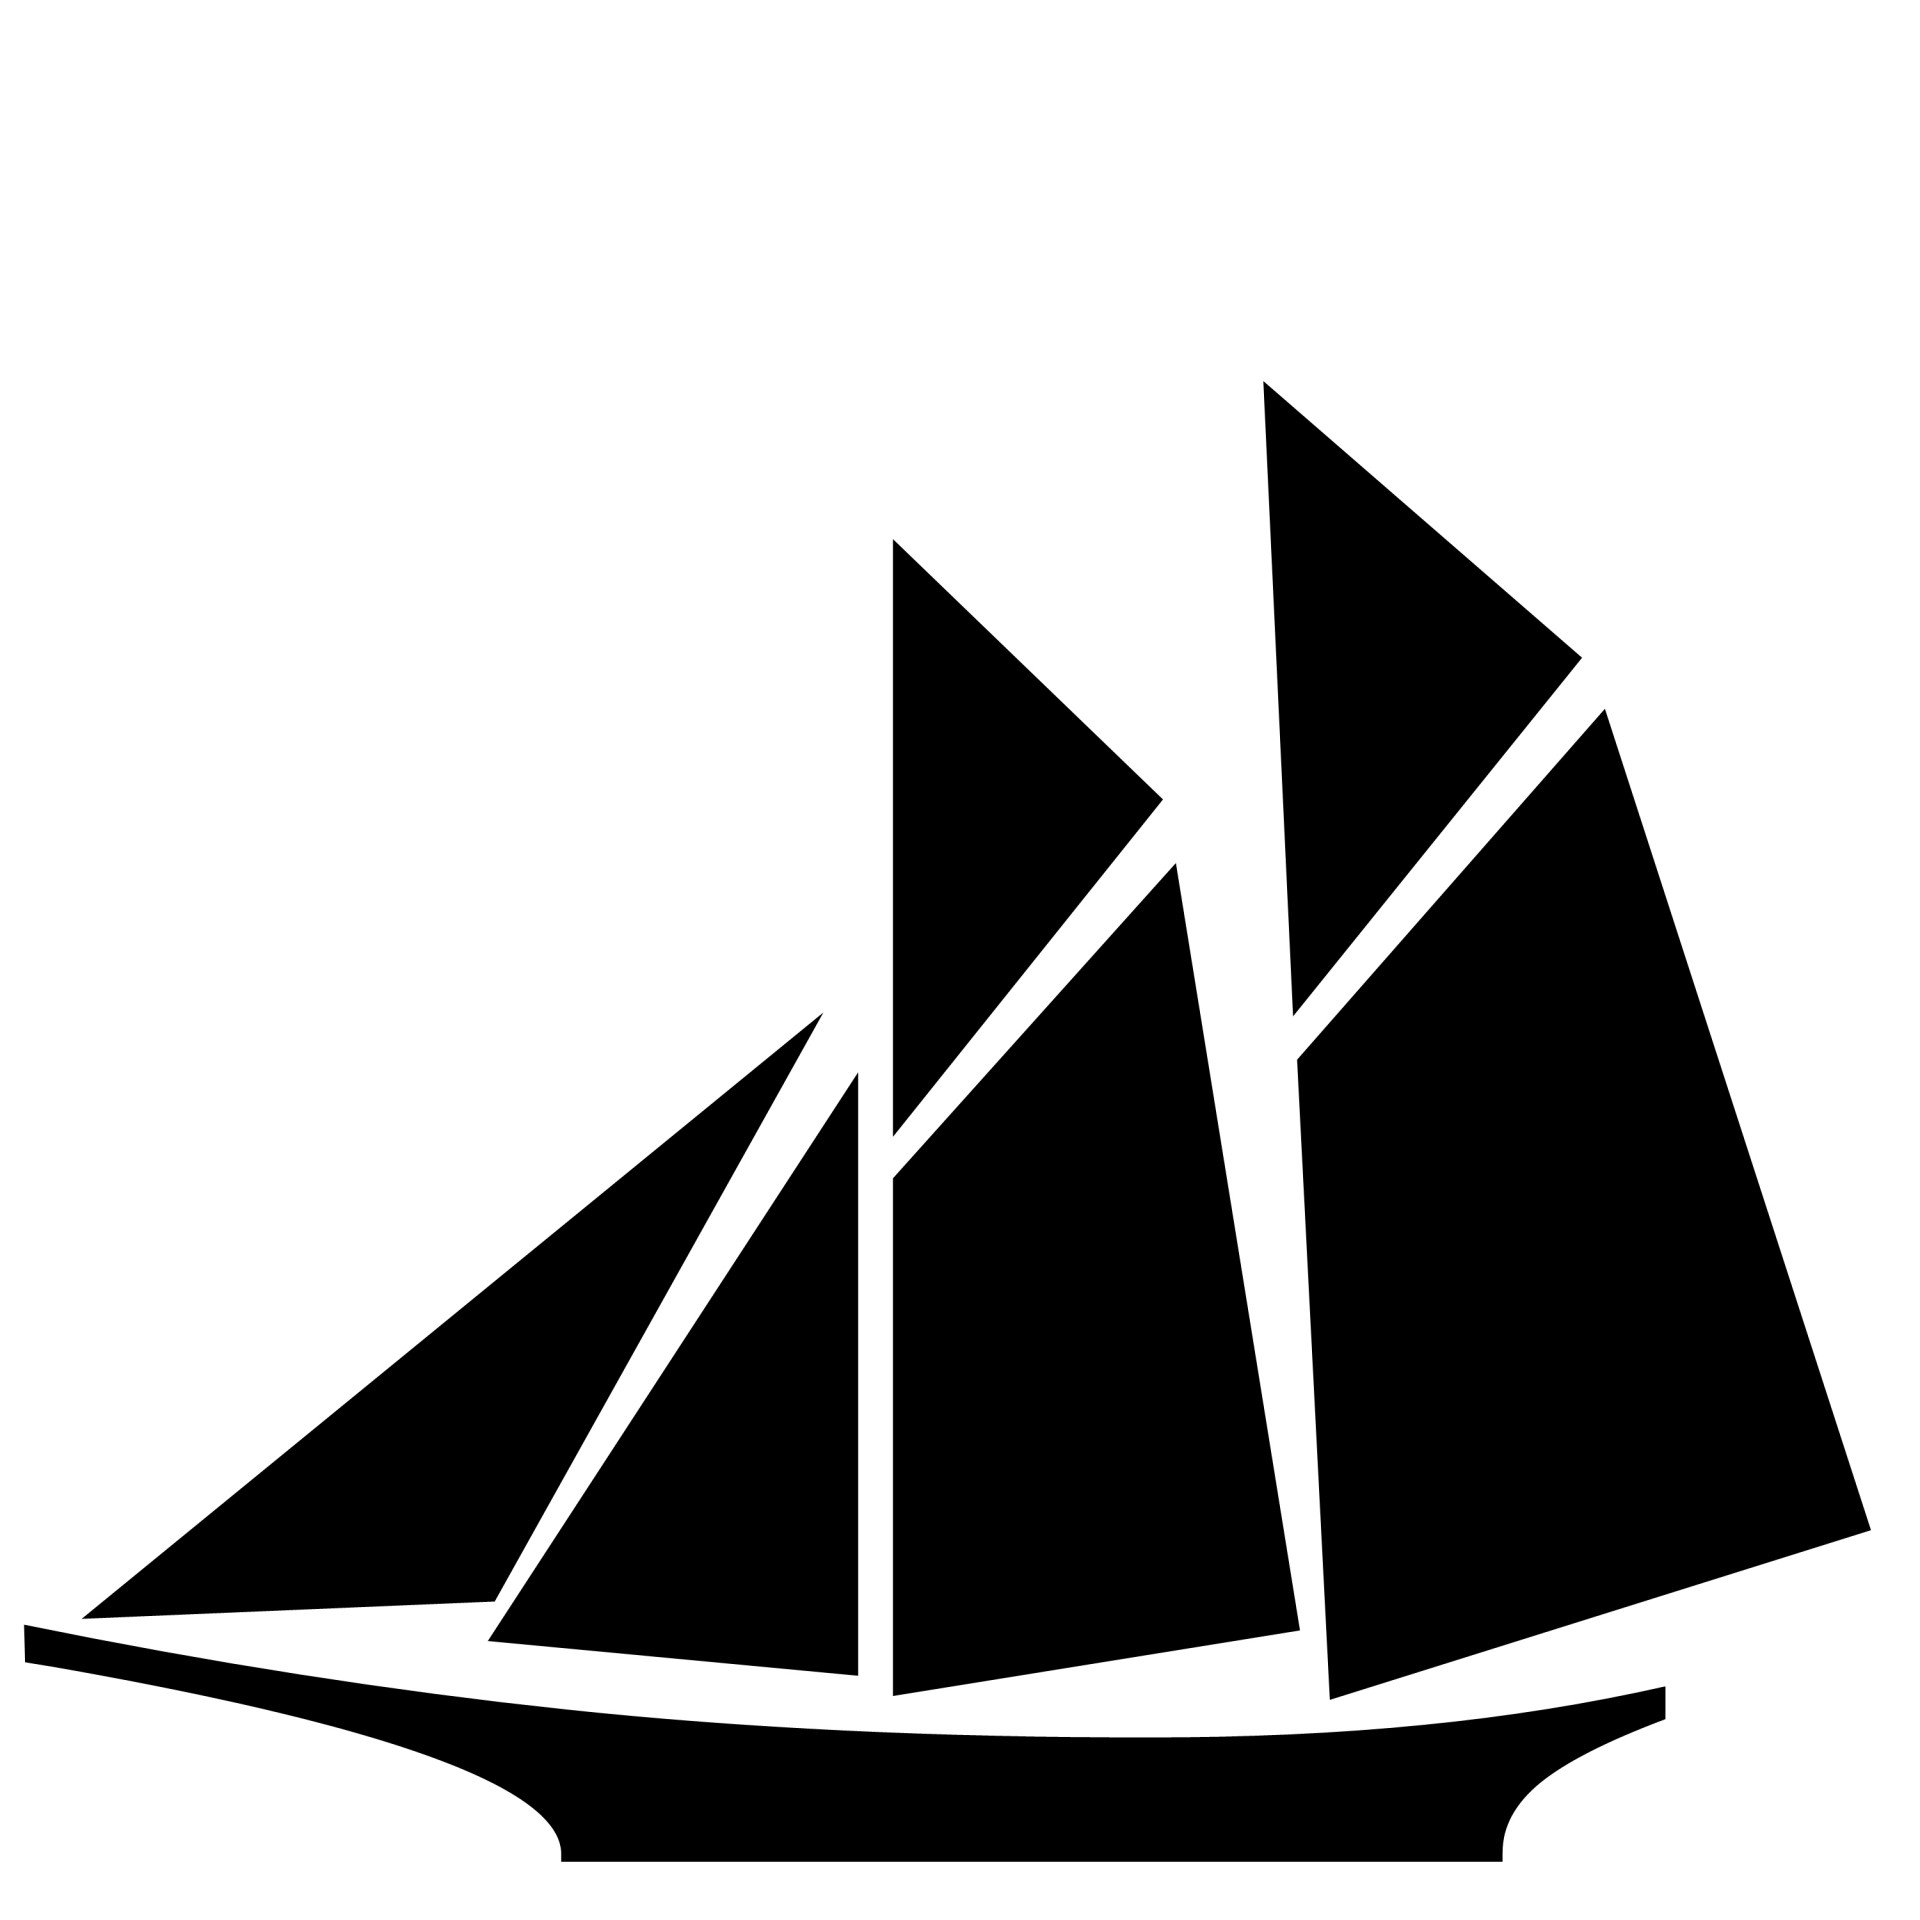 1920x1920 Sailboat Silhouette Free Stock Photo